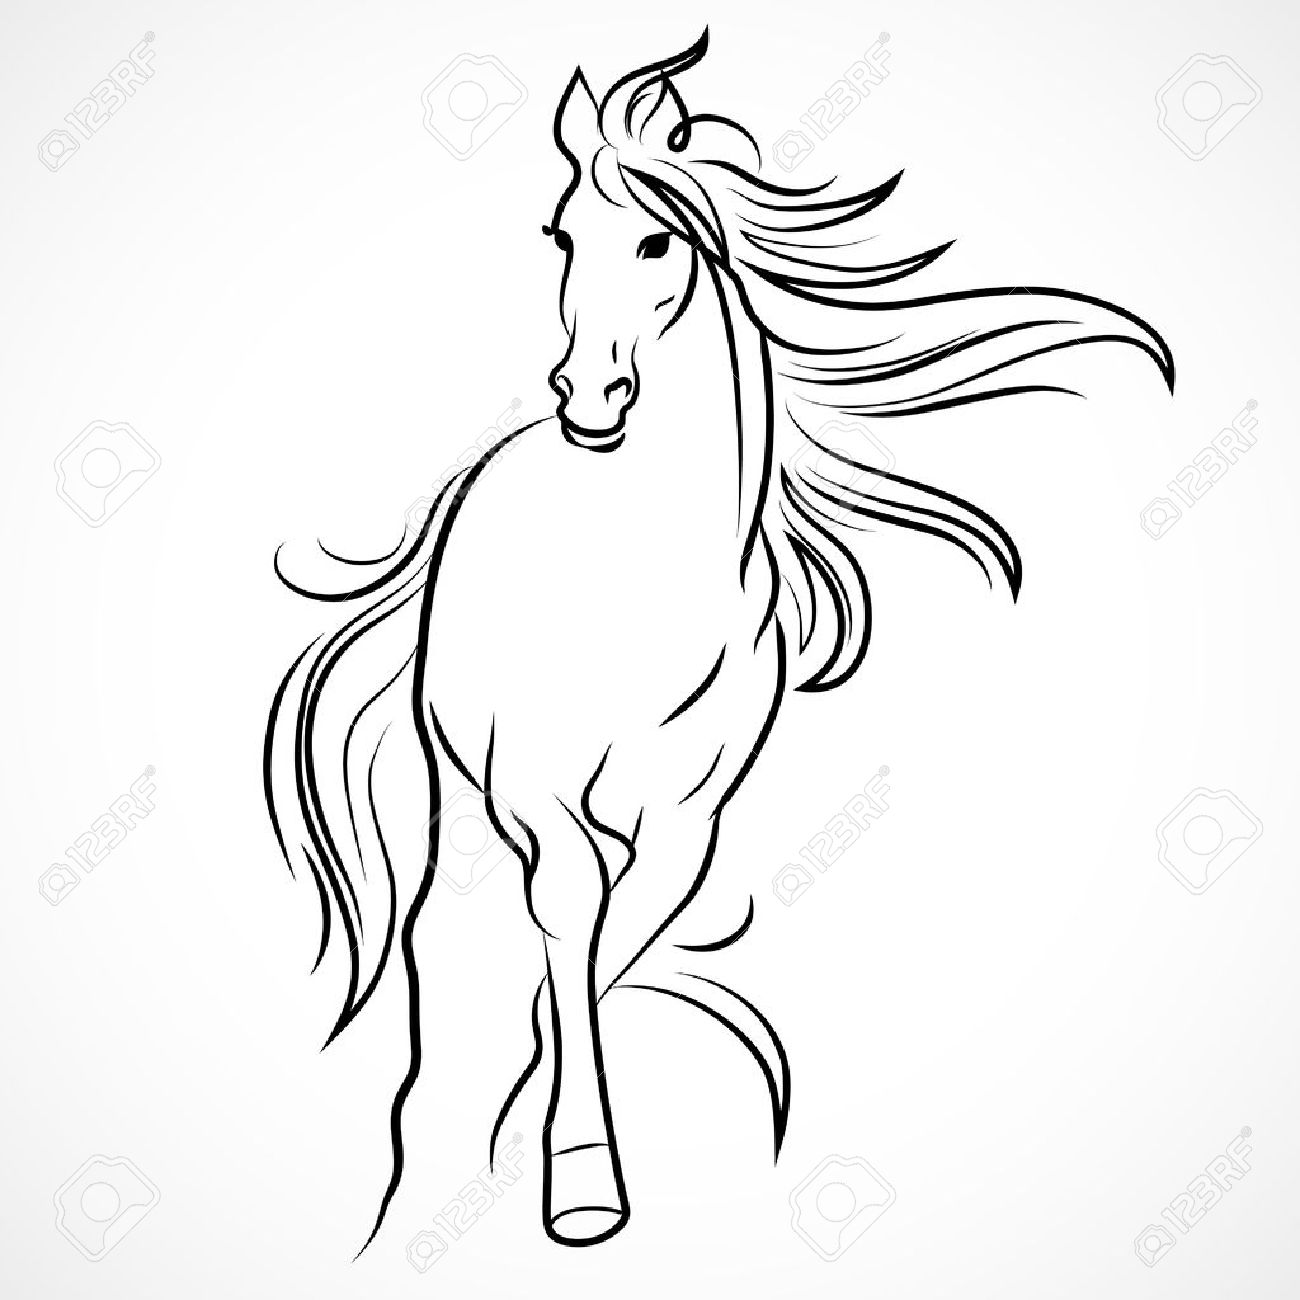 1300x1300 Silhouette Of Horse. Vector Linear Drawing Royalty Free Cliparts